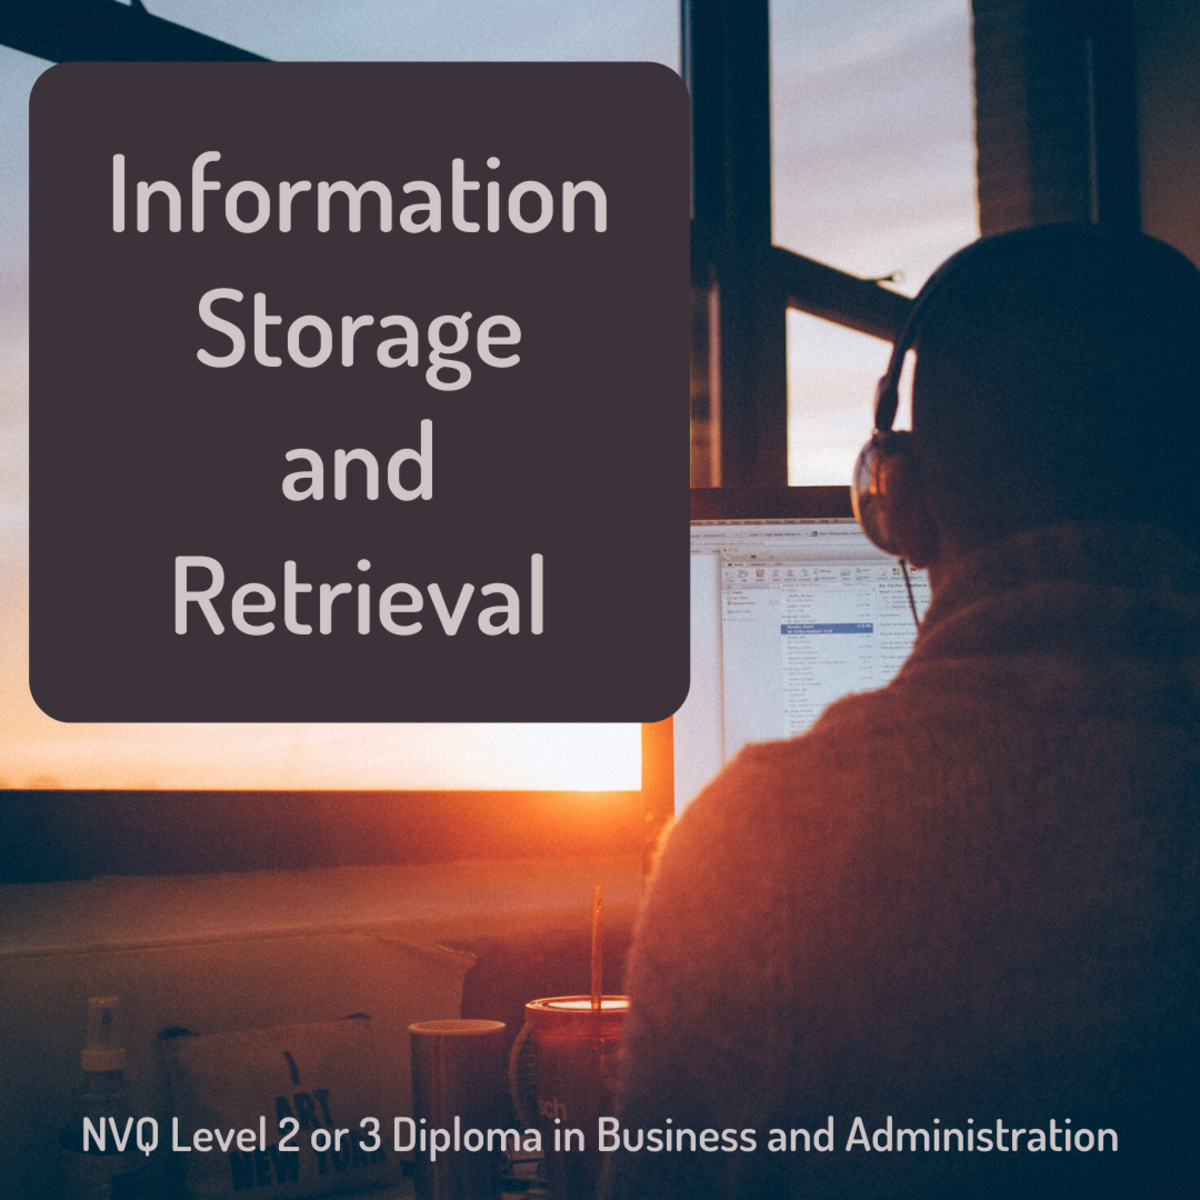 NVQ: Explain the Procedures for Storing and Retrieving Information